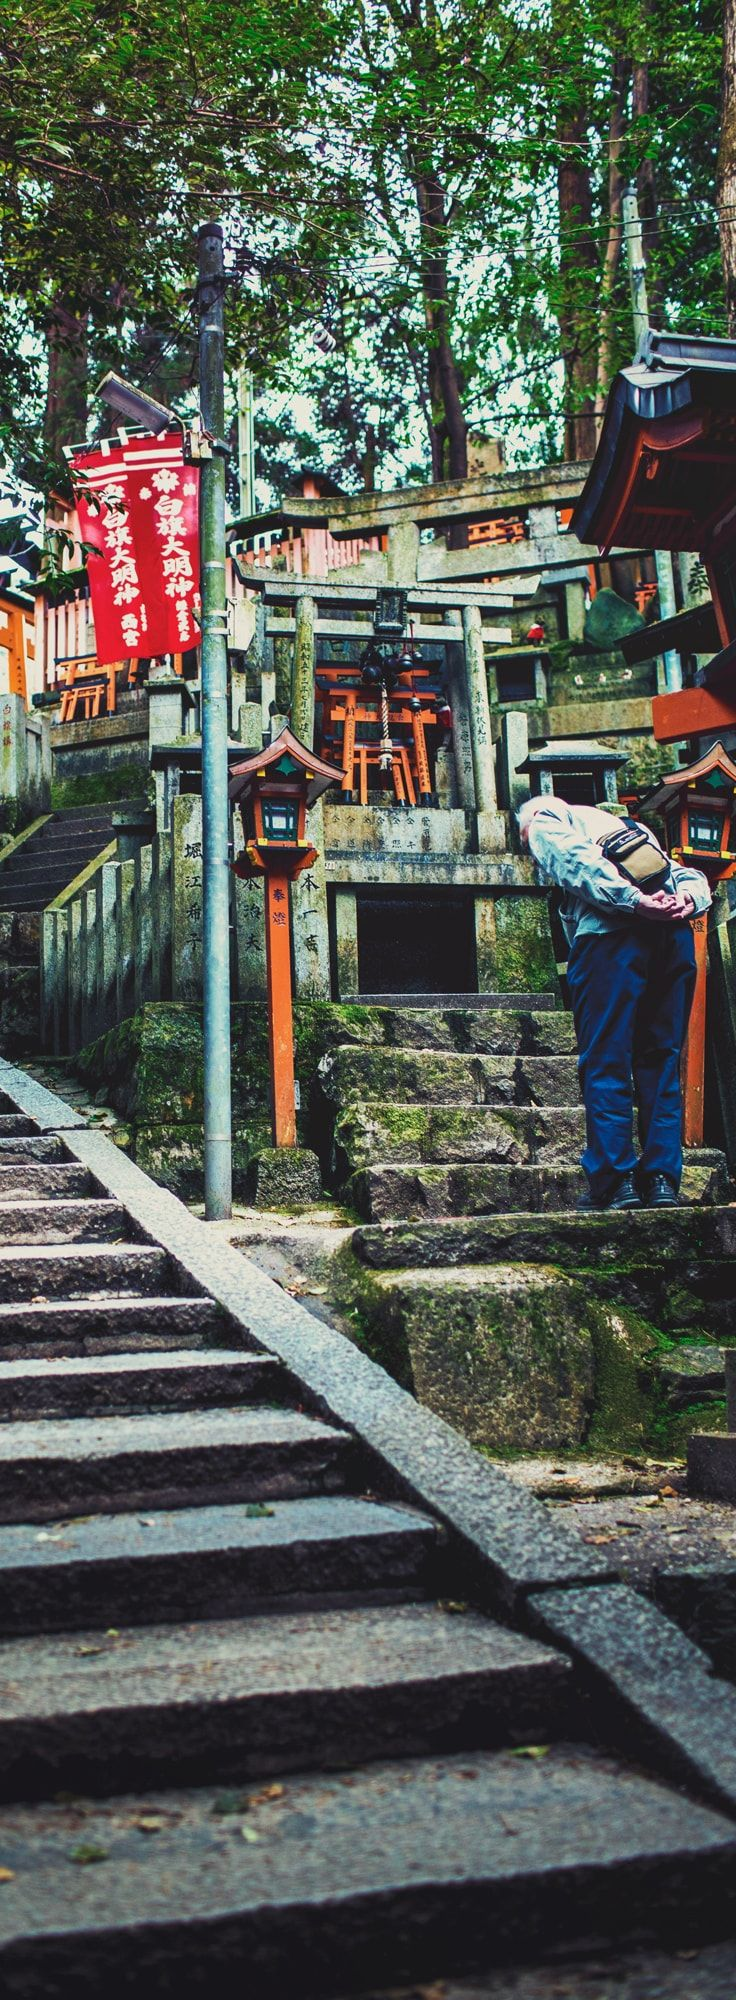 Comprehensive Travel Guide to Fushimi Inari Shrine at Inari Mountain, the most famous of several thousand shrines dedicated to Inari, the Shinto God of rice and prosperity. @ A Travel Diary